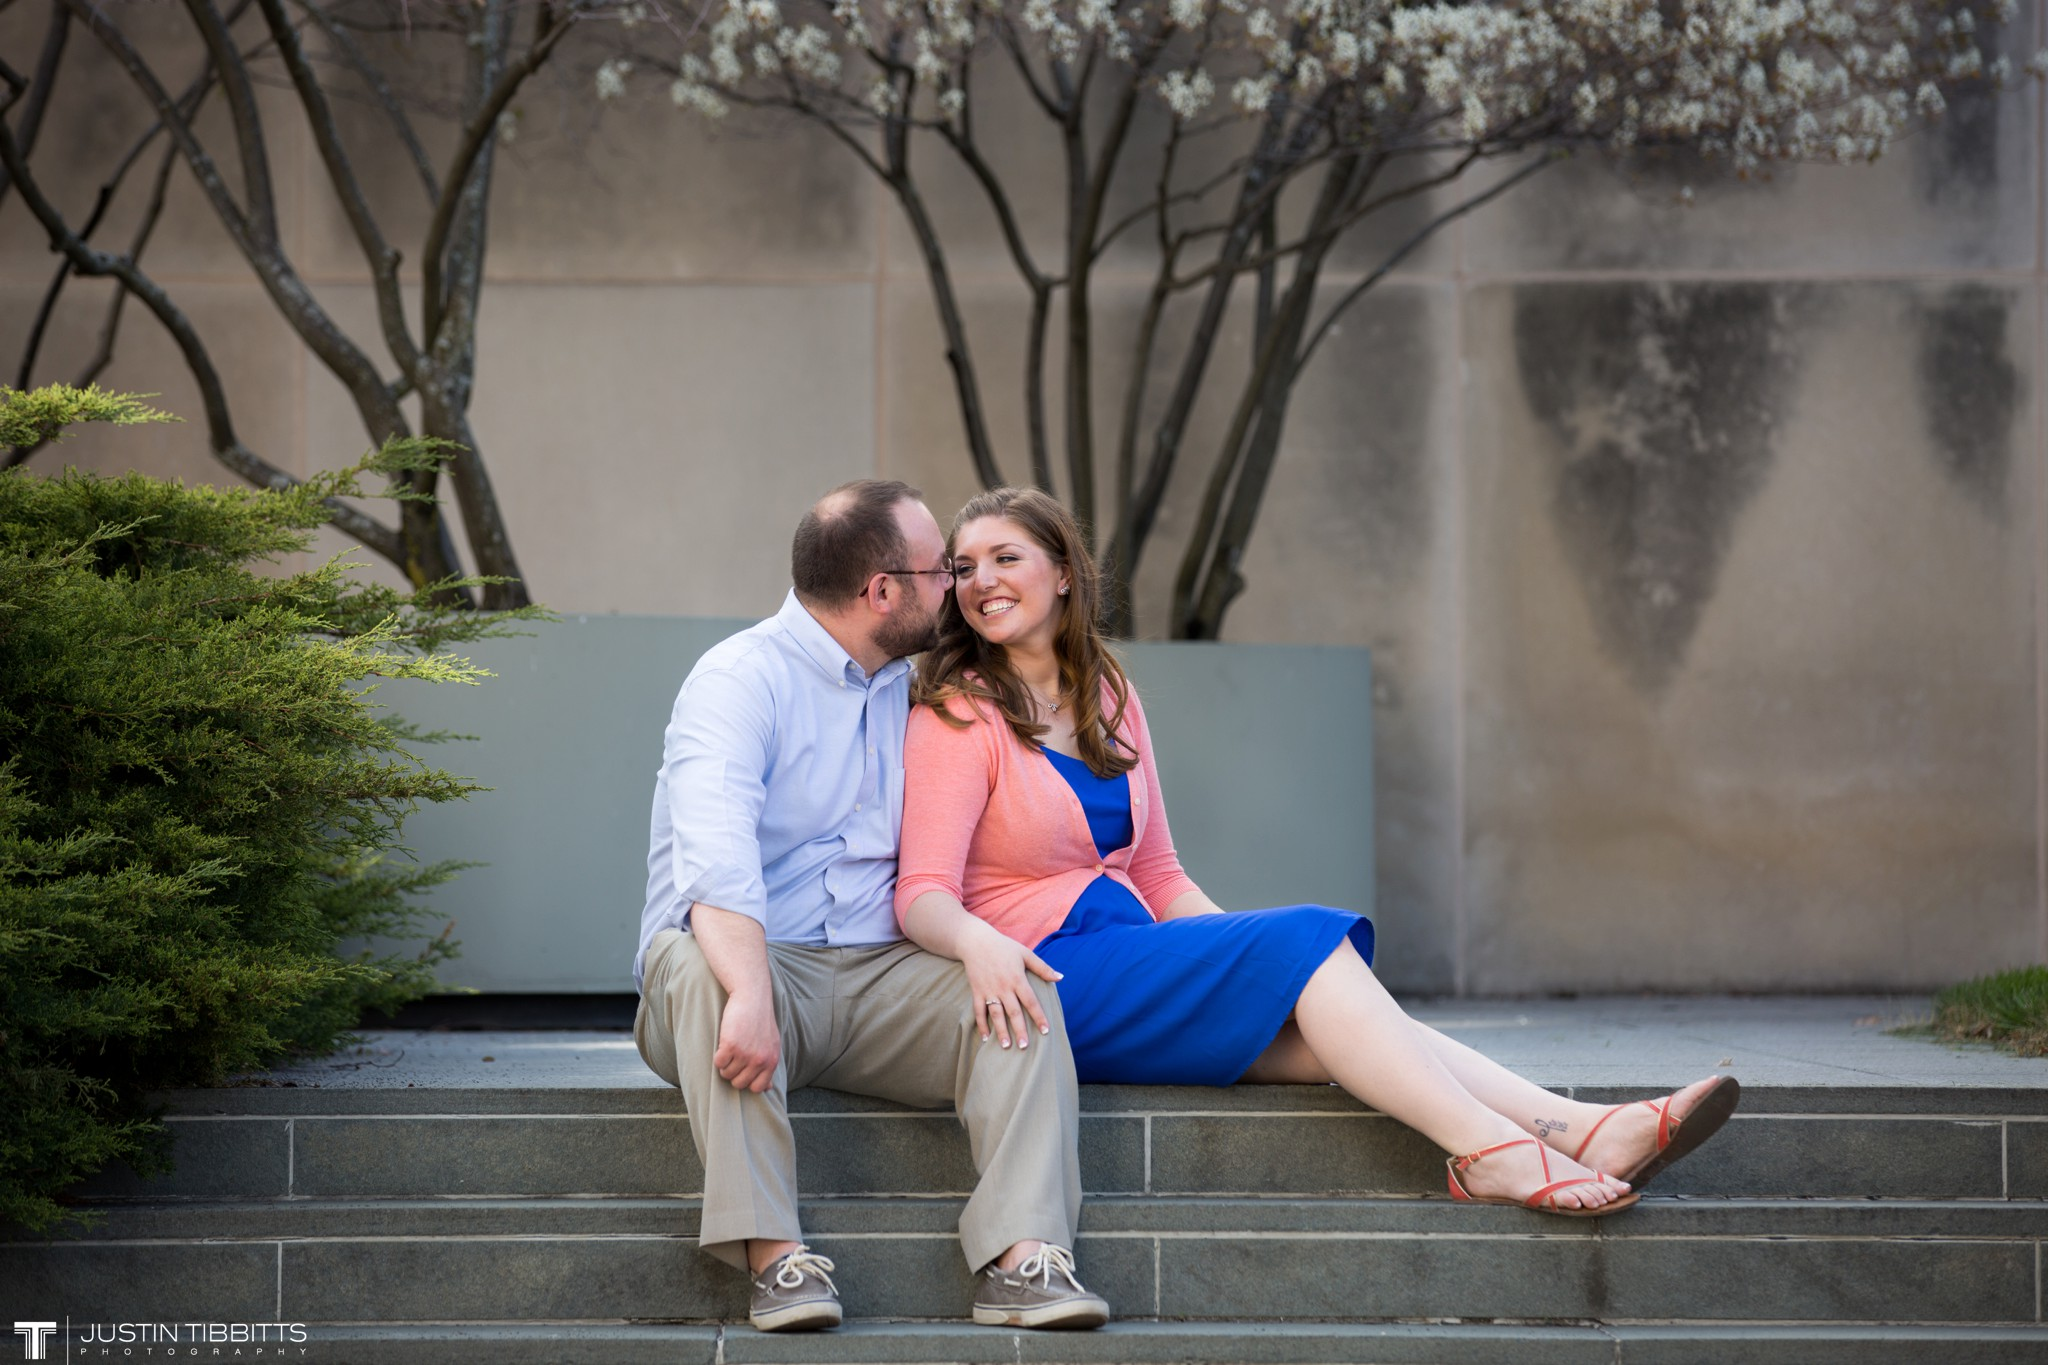 Justin Tibbitts Photography Sara and Erics Albany NY Engagement Photoshoot-16